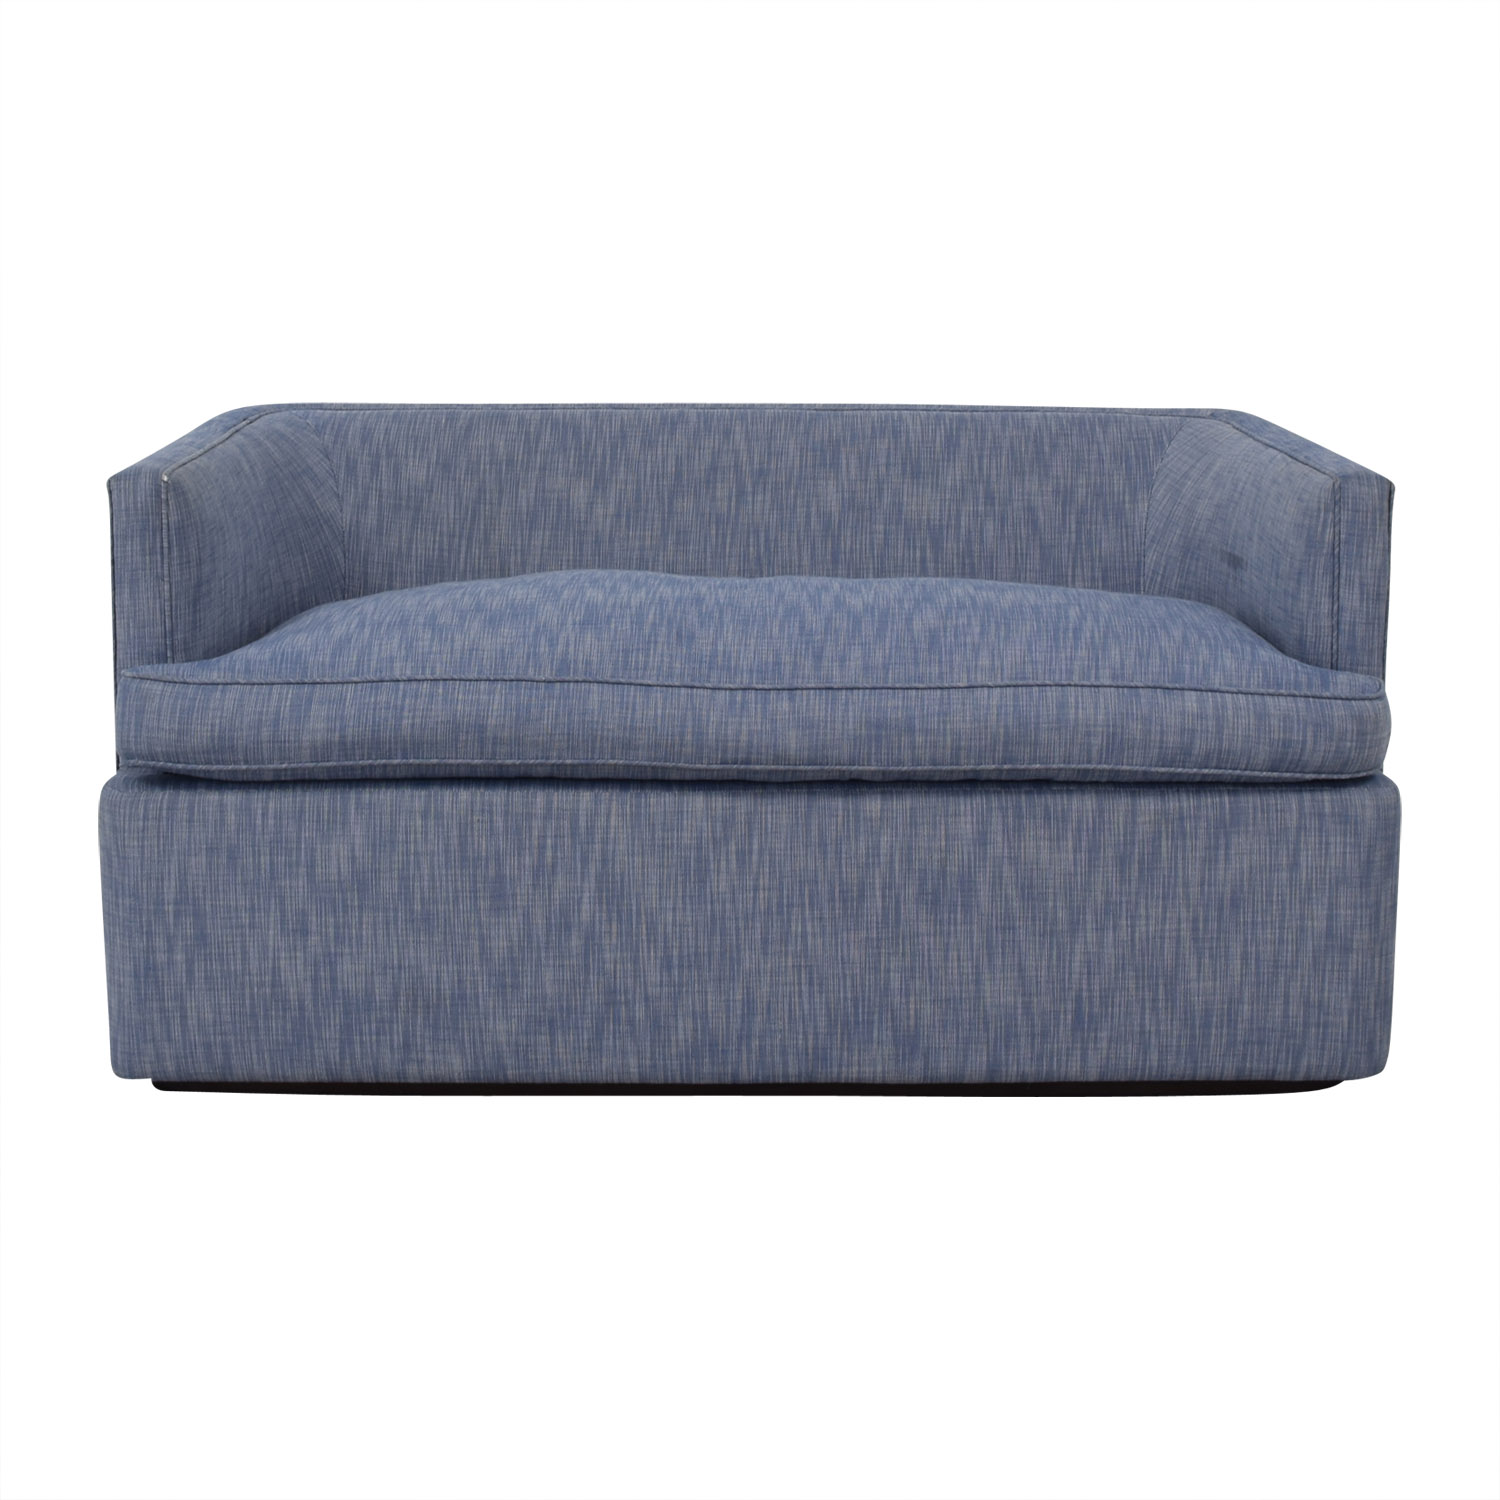 buy  Custom Blue Loveseat online